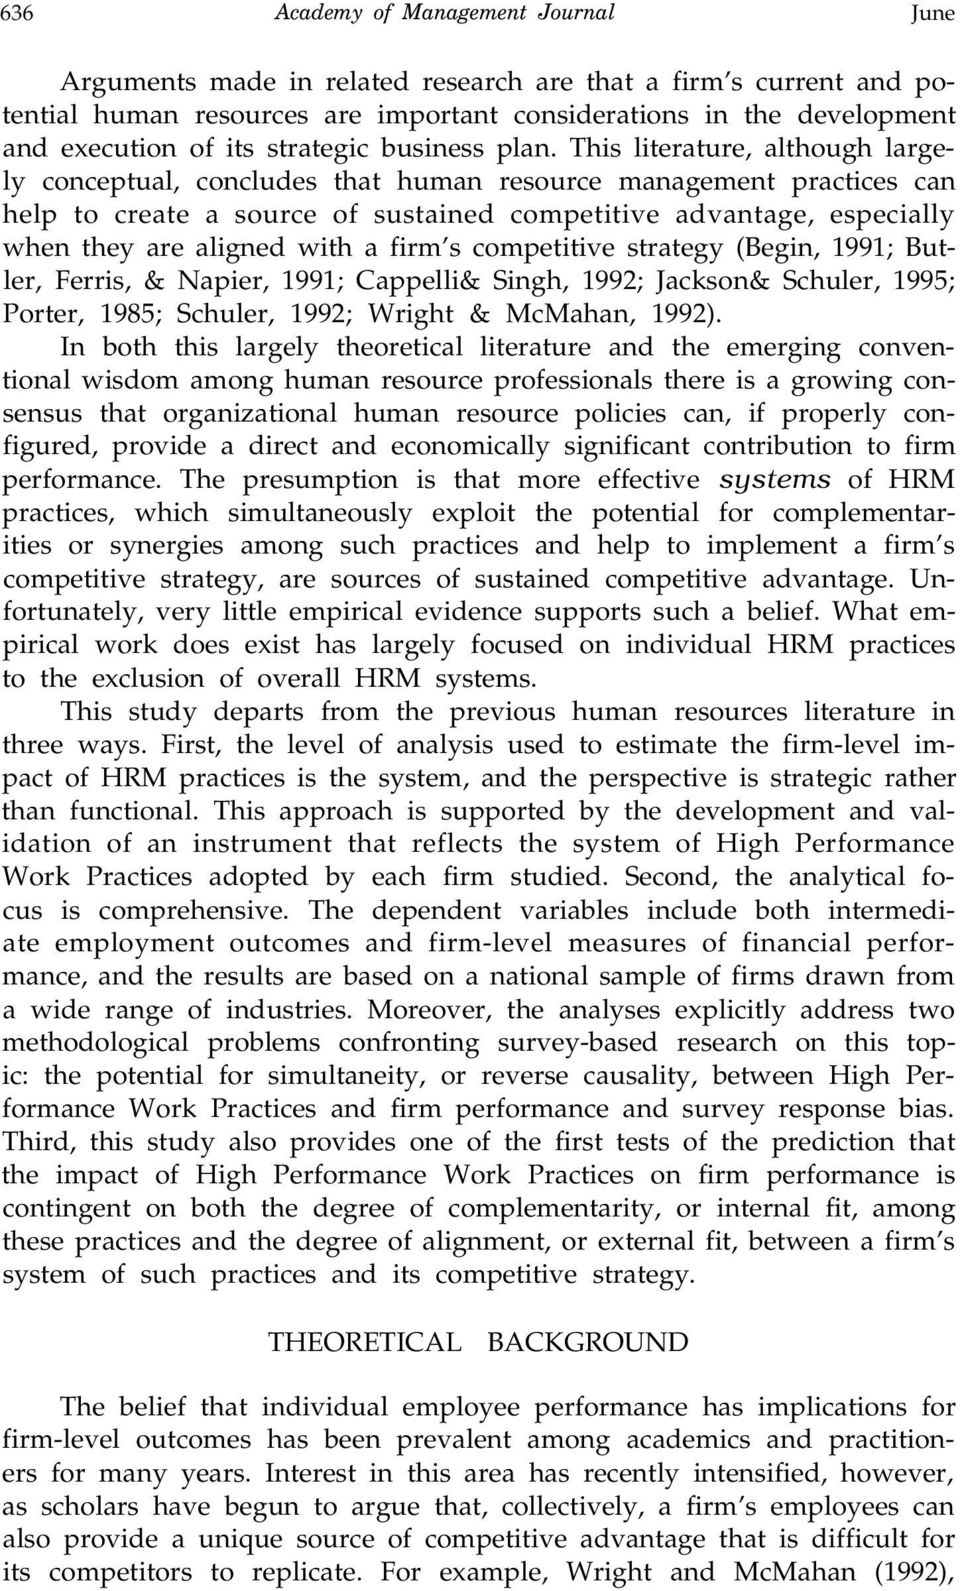 This literature, although largely conceptual, concludes that human resource management practices can help to create a source of sustained competitive advantage, especially when they are aligned with